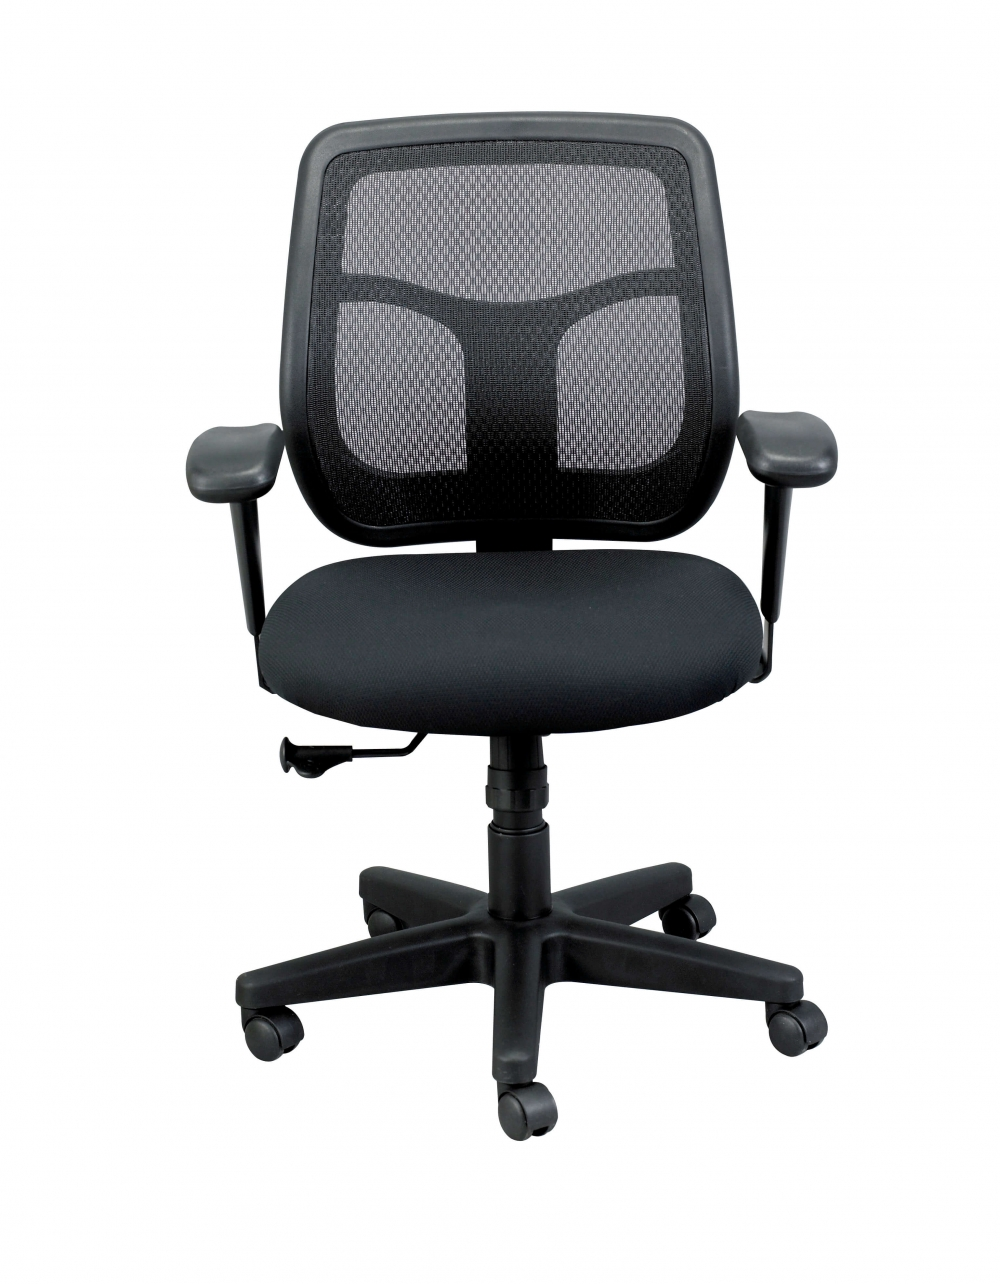 Office task chair front view